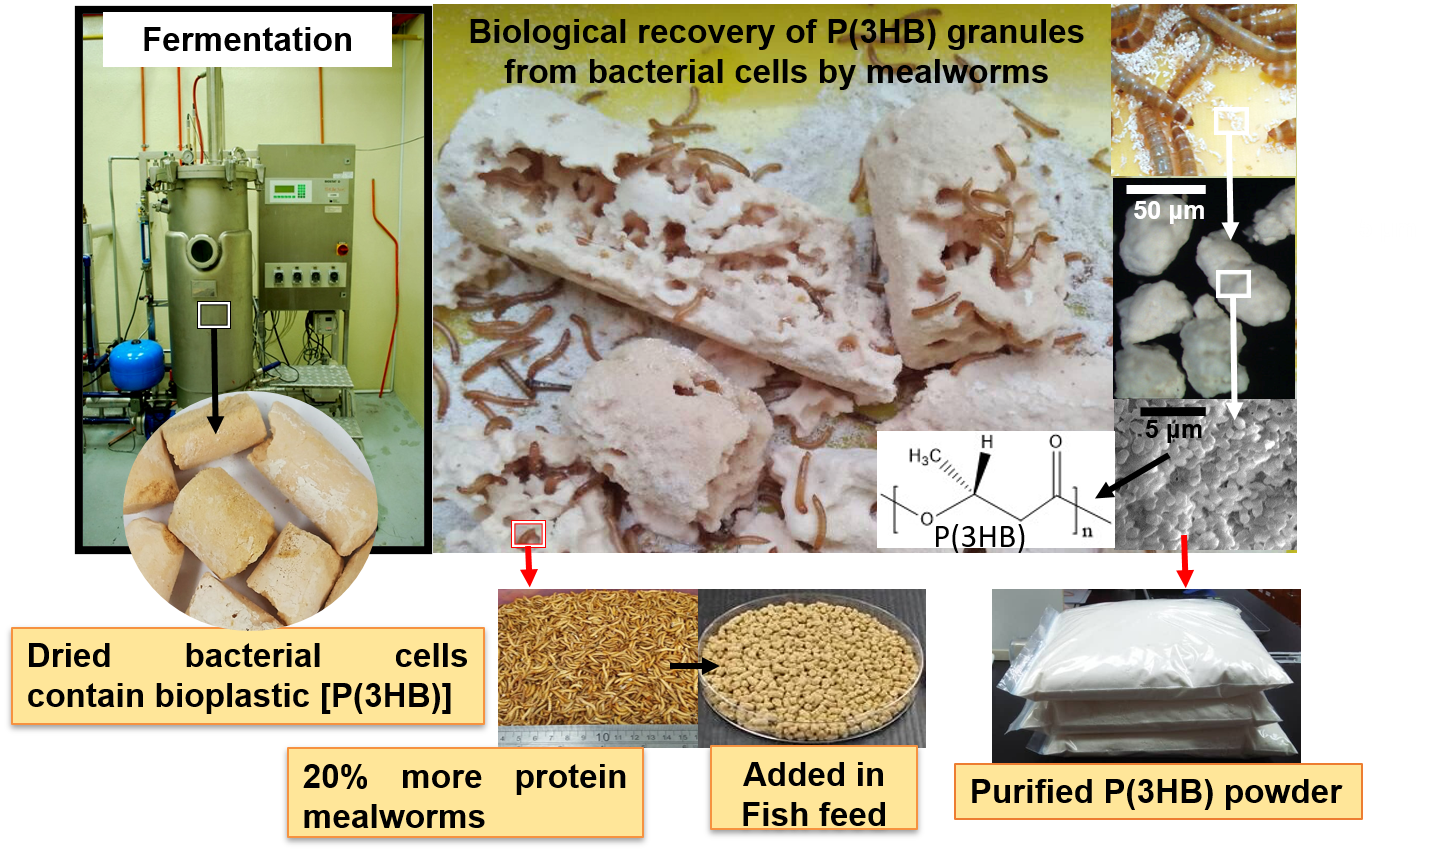 Simultaneous production/recovery of Polyhydroxyalkanoates (PHA) and protein-rich mealworms for Aquaculture feed formulation